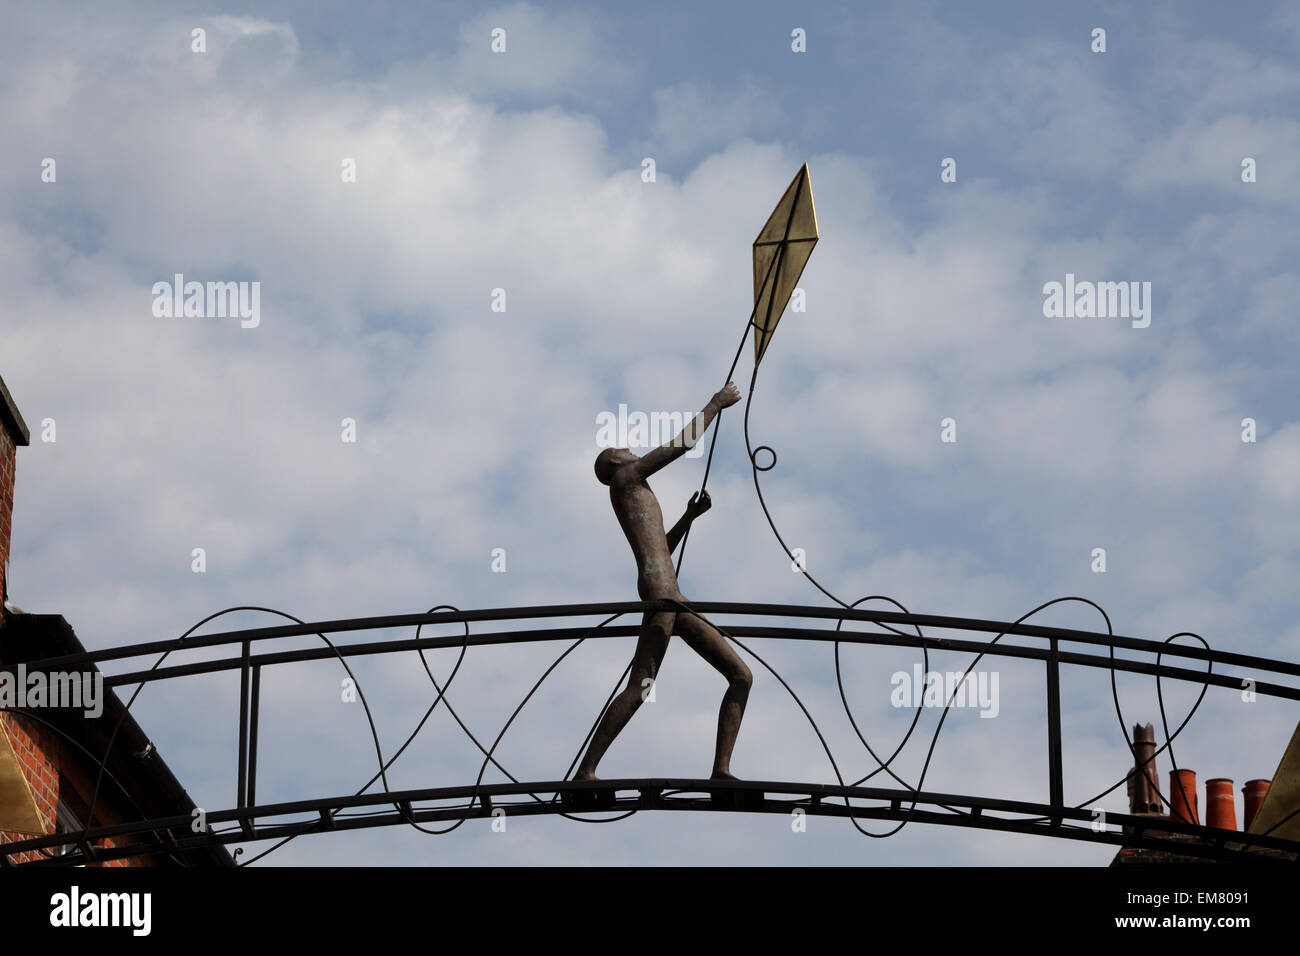 The Kite Flyer sculpture above Parchment Street in Winchester. A bronze figure of a man flying a kite - Stock Image